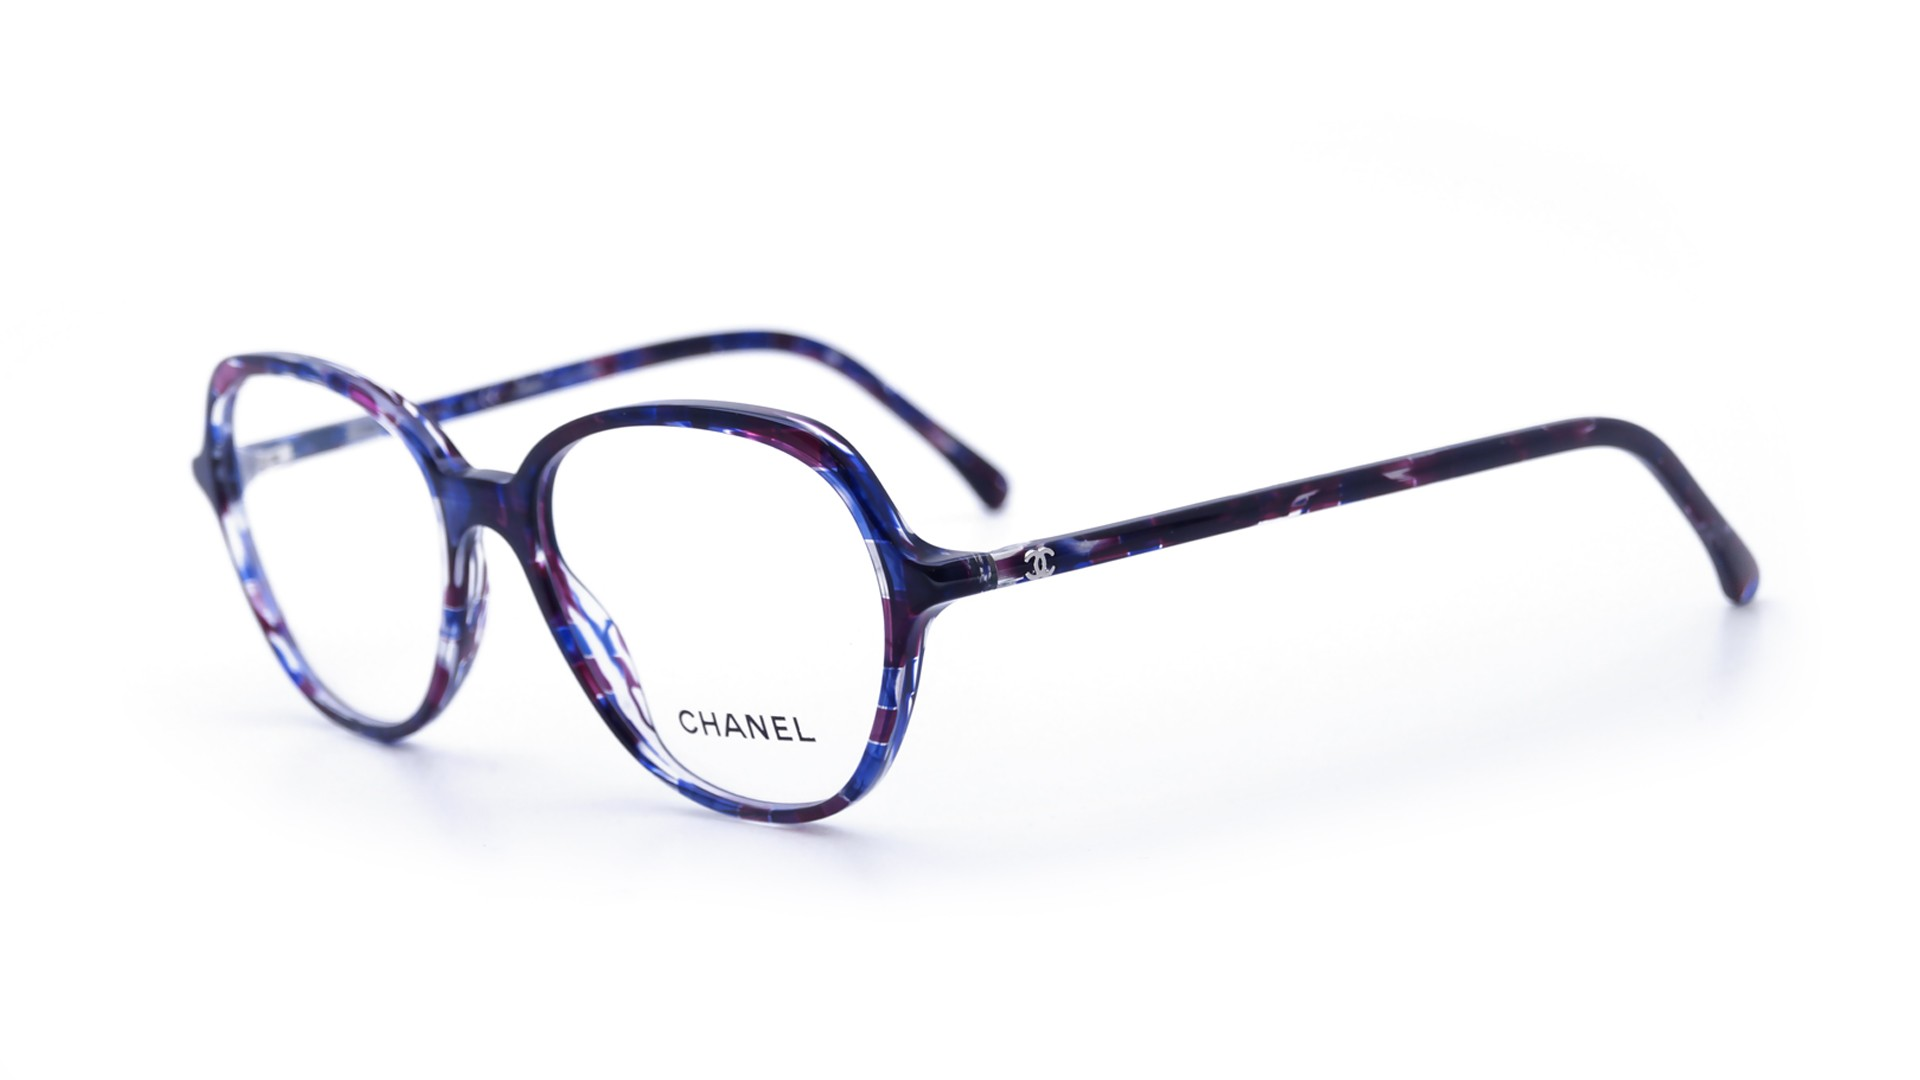 35e47a7534 Chanel Signature Other colors CH3338 1491 51-16